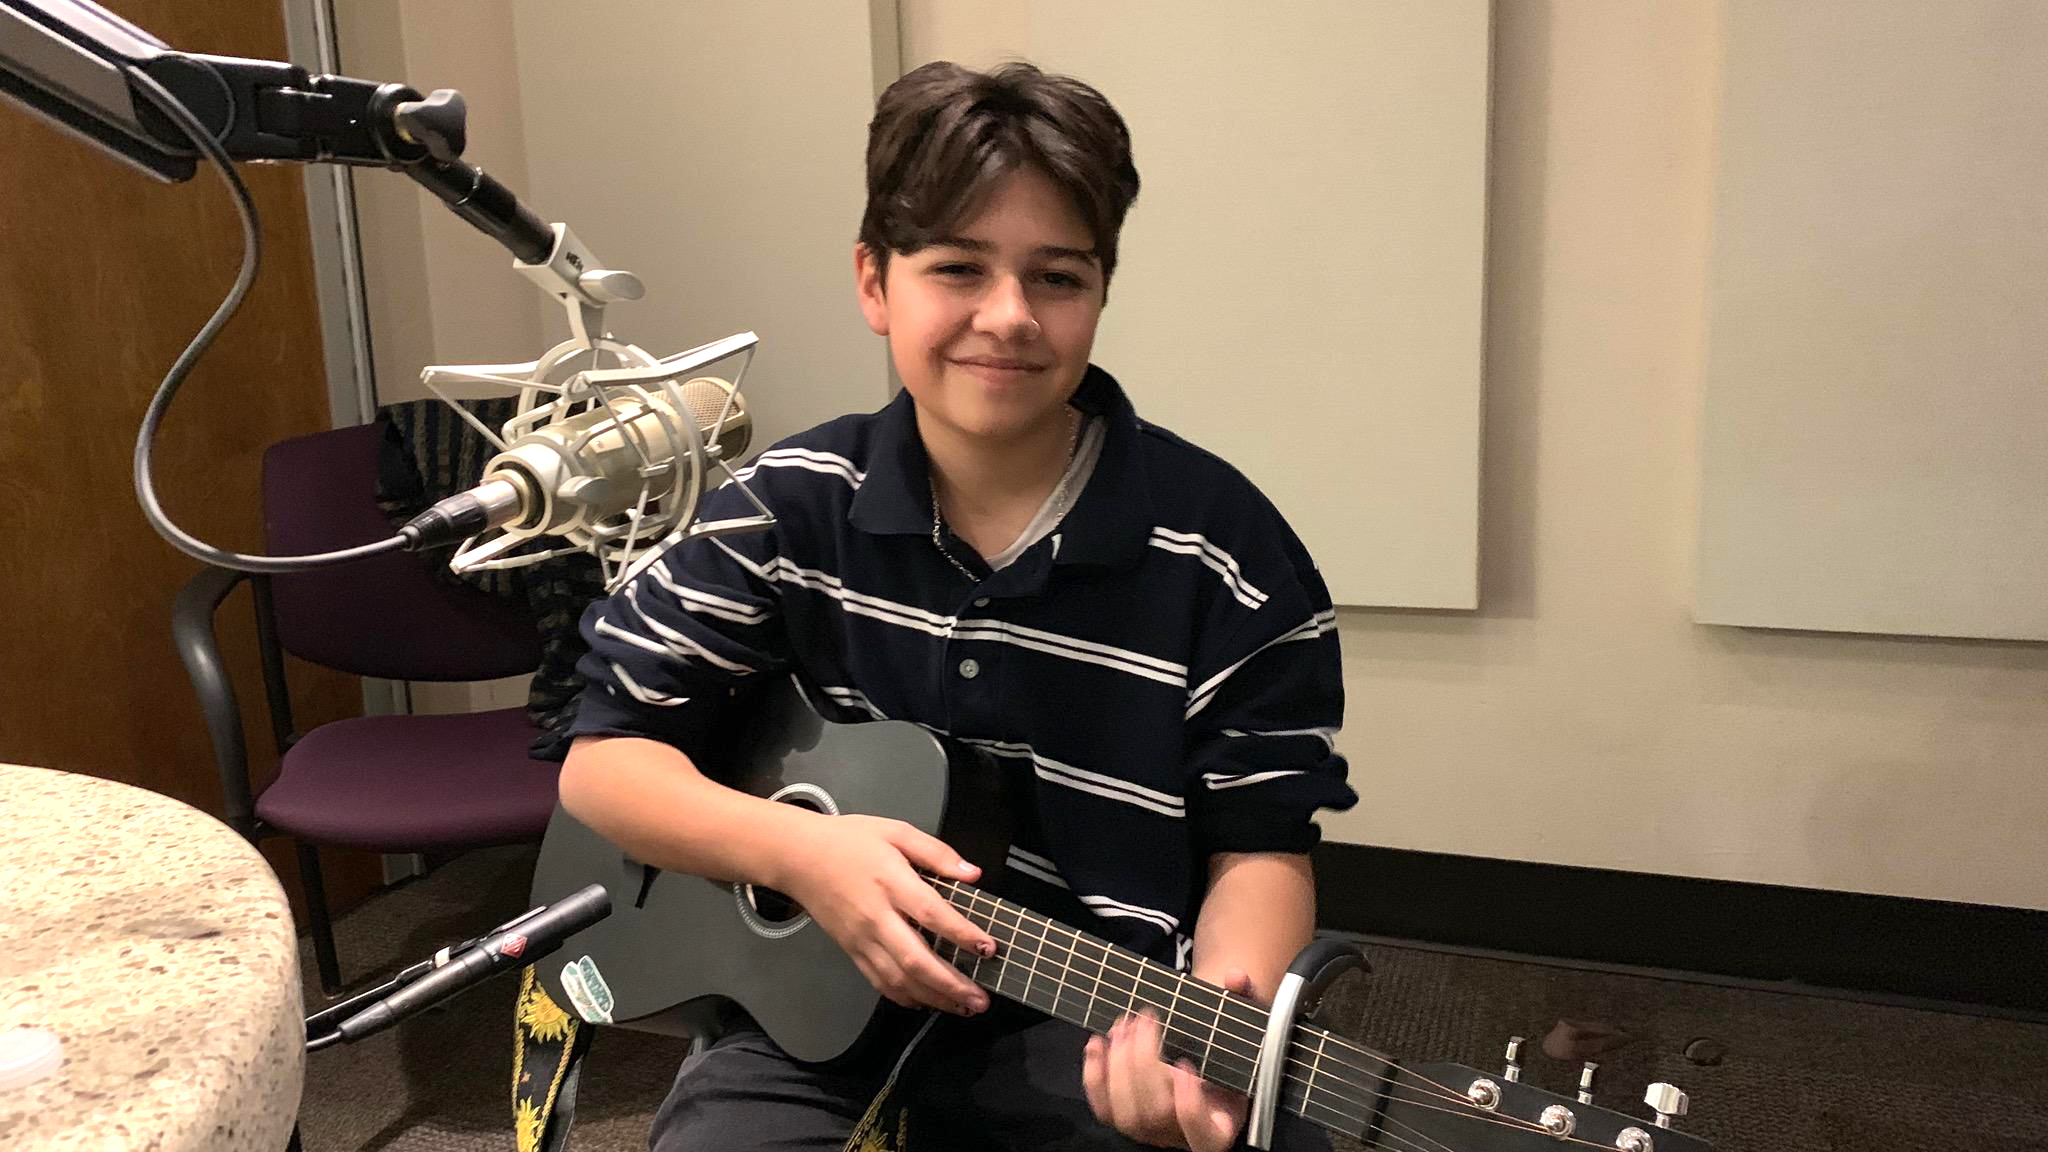 Noah James recording his music at the AZPM studio.